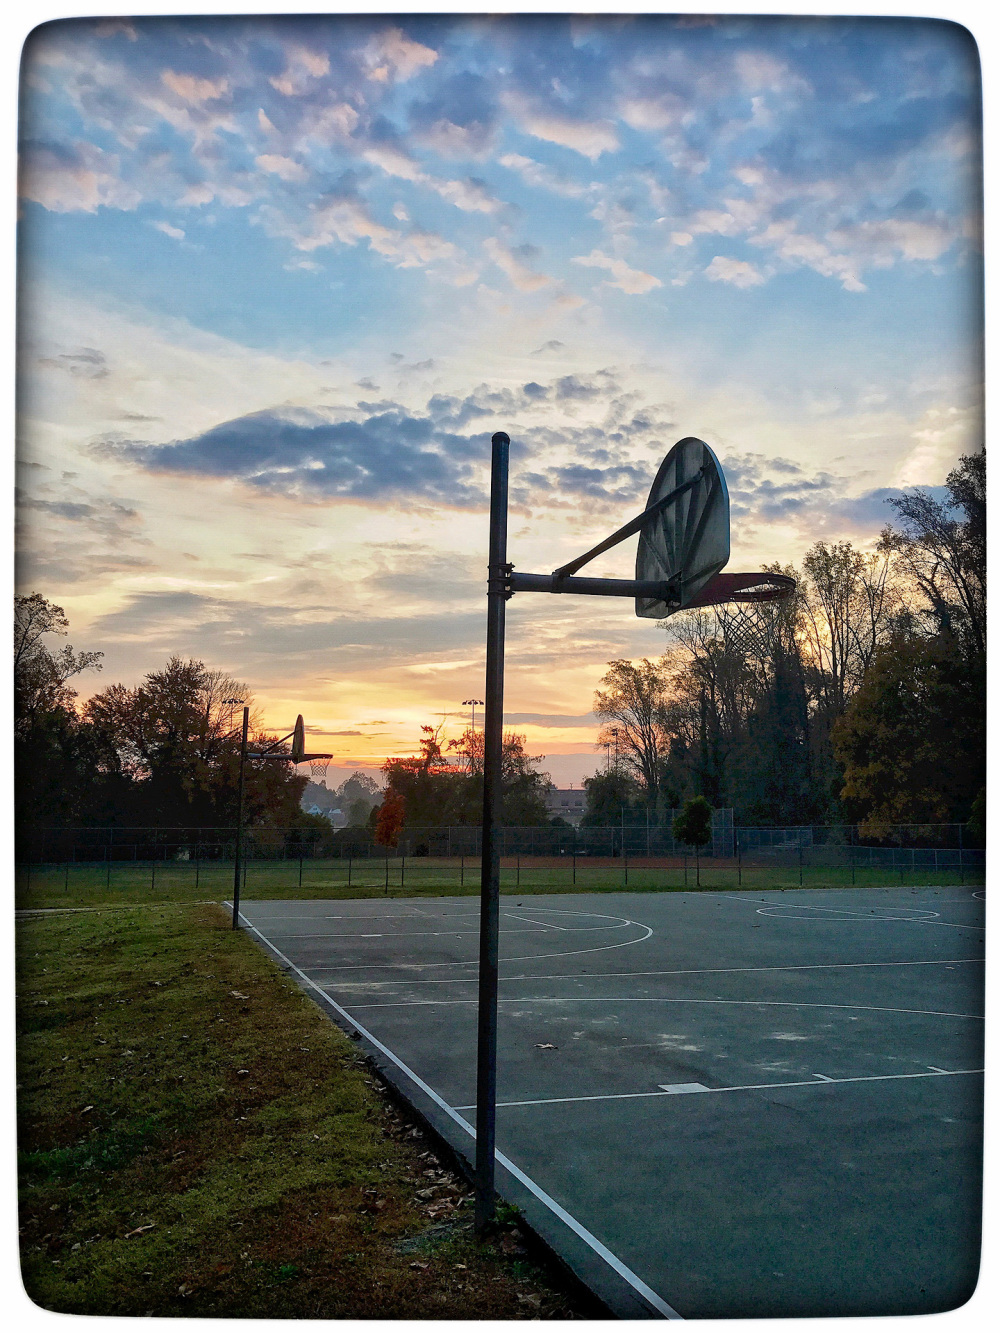 The court in morning